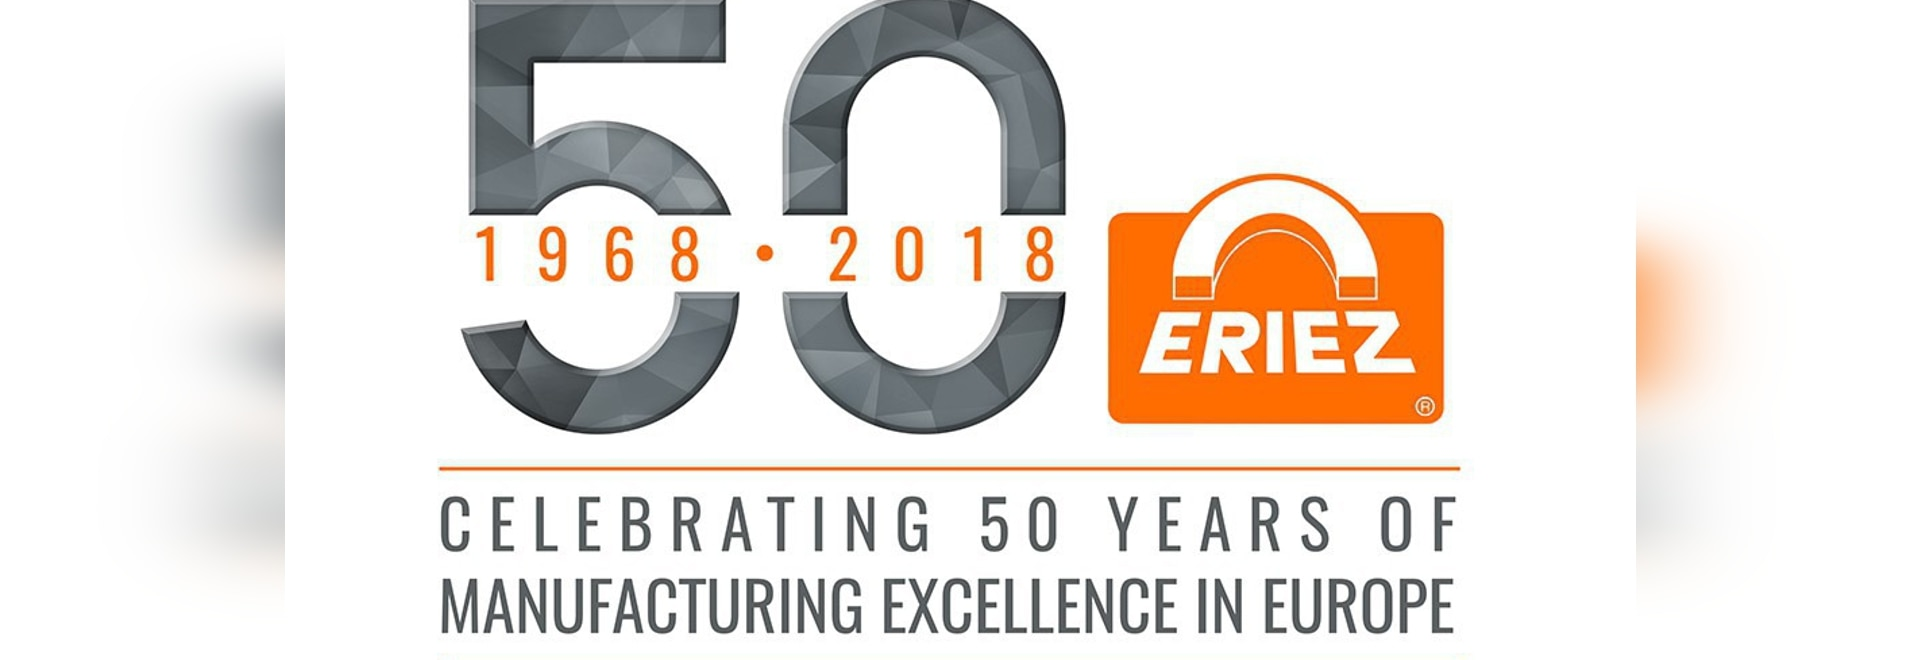 Eriez Celebrates 50 Years